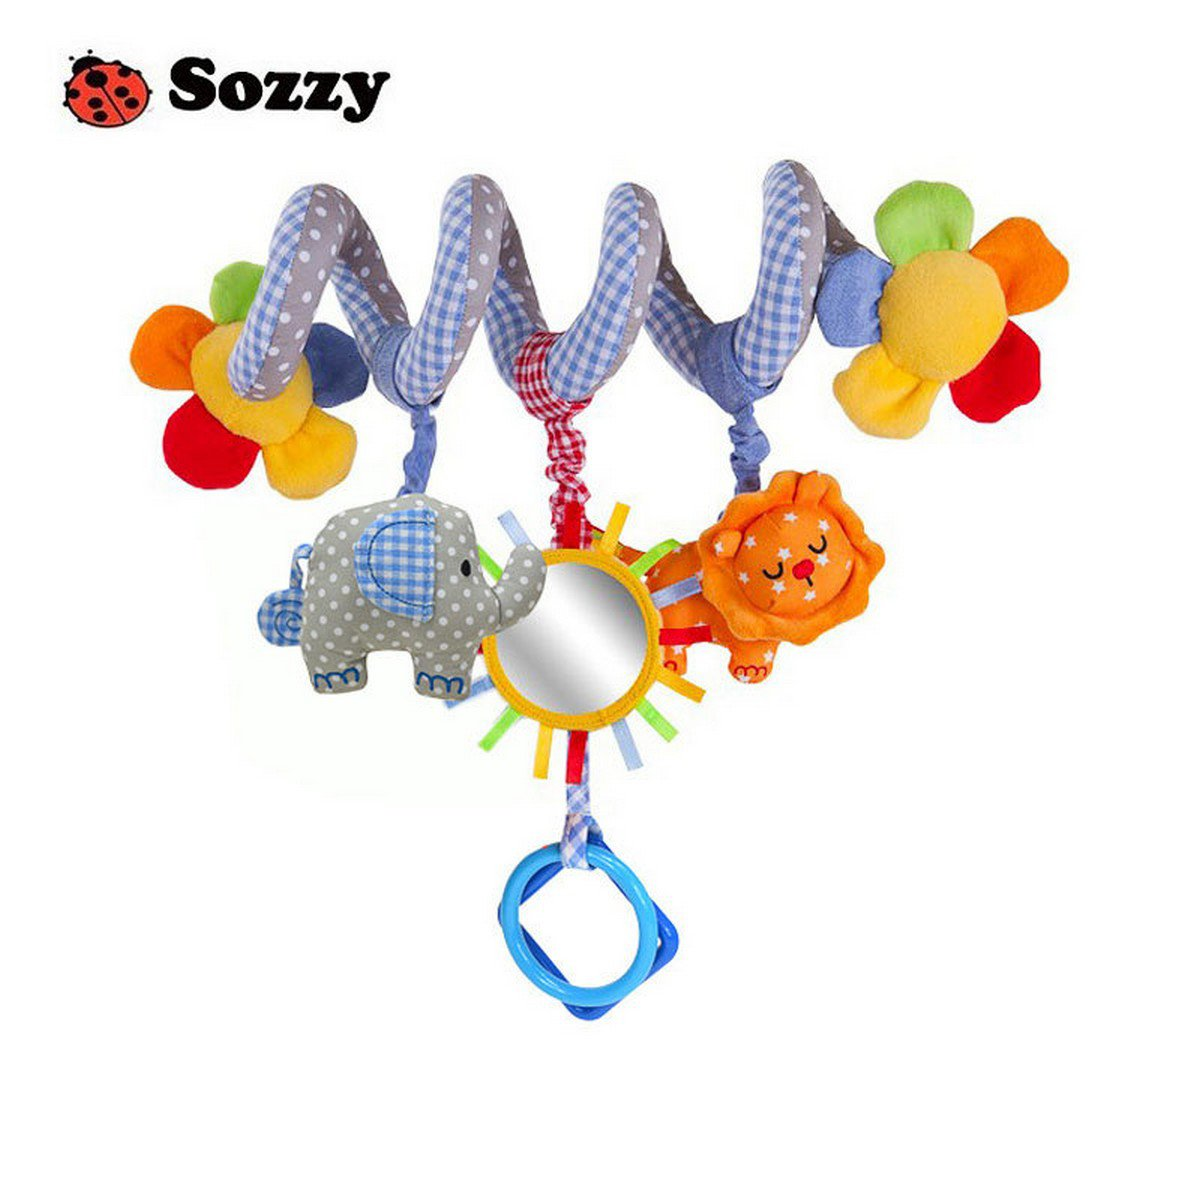 Buy Sozzy Newborn Baby Stroller Toys Elephant Lion Model Baby Bed Hanging Educational Rattle Toys W